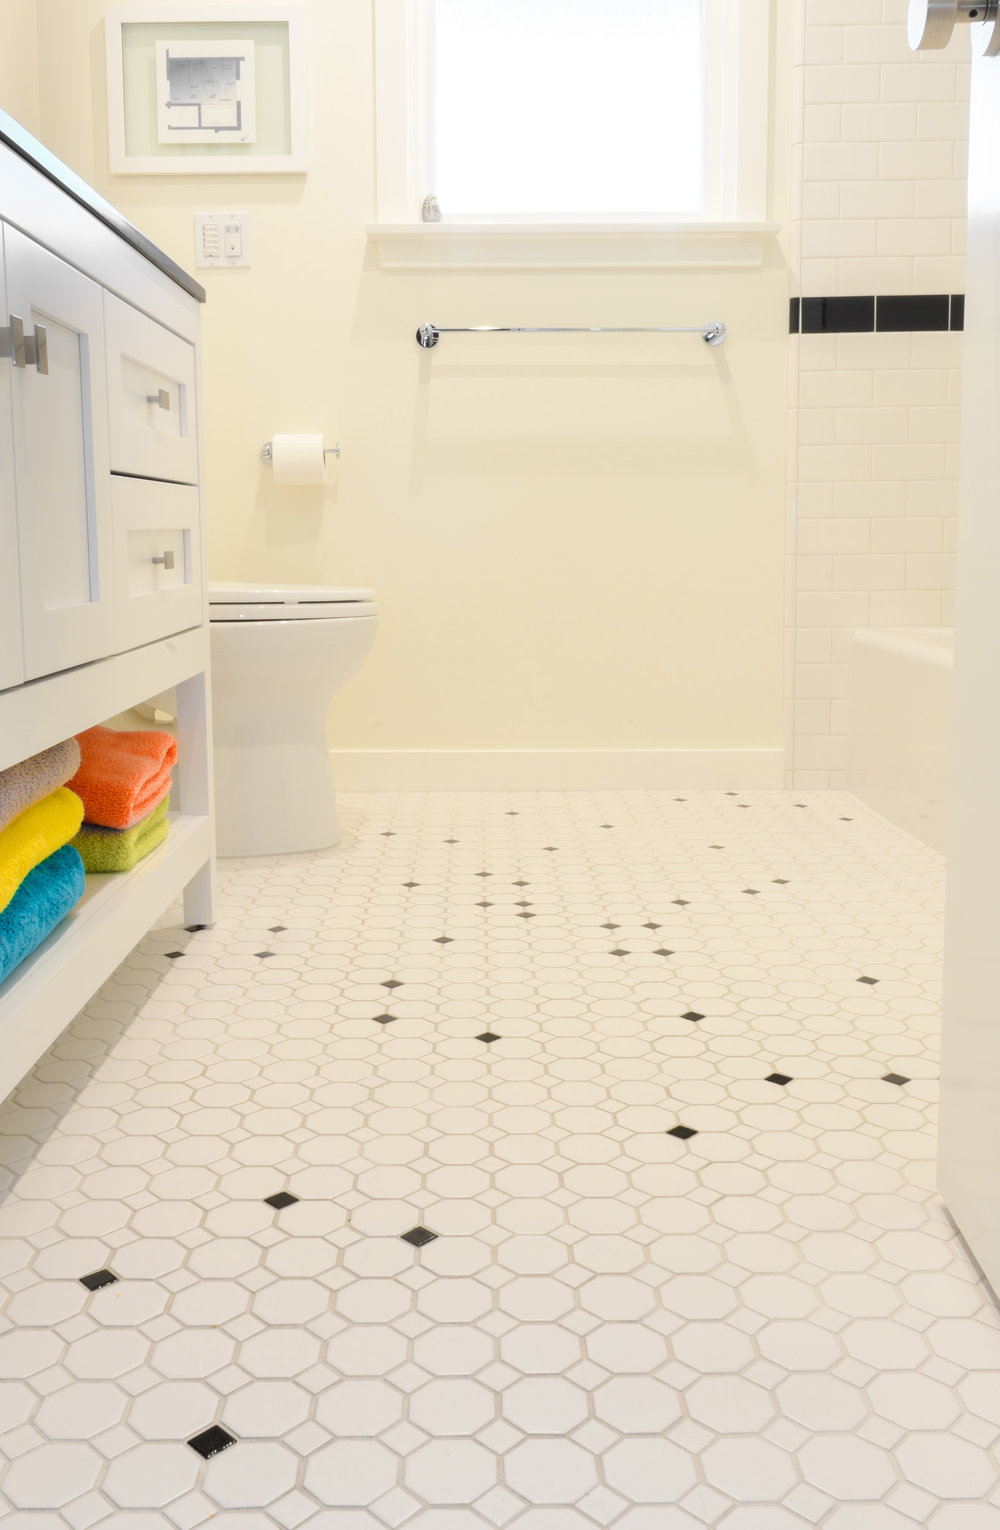 Black accent tile dots on the white bathroom floor to mimic the constellations in the Northern Sky